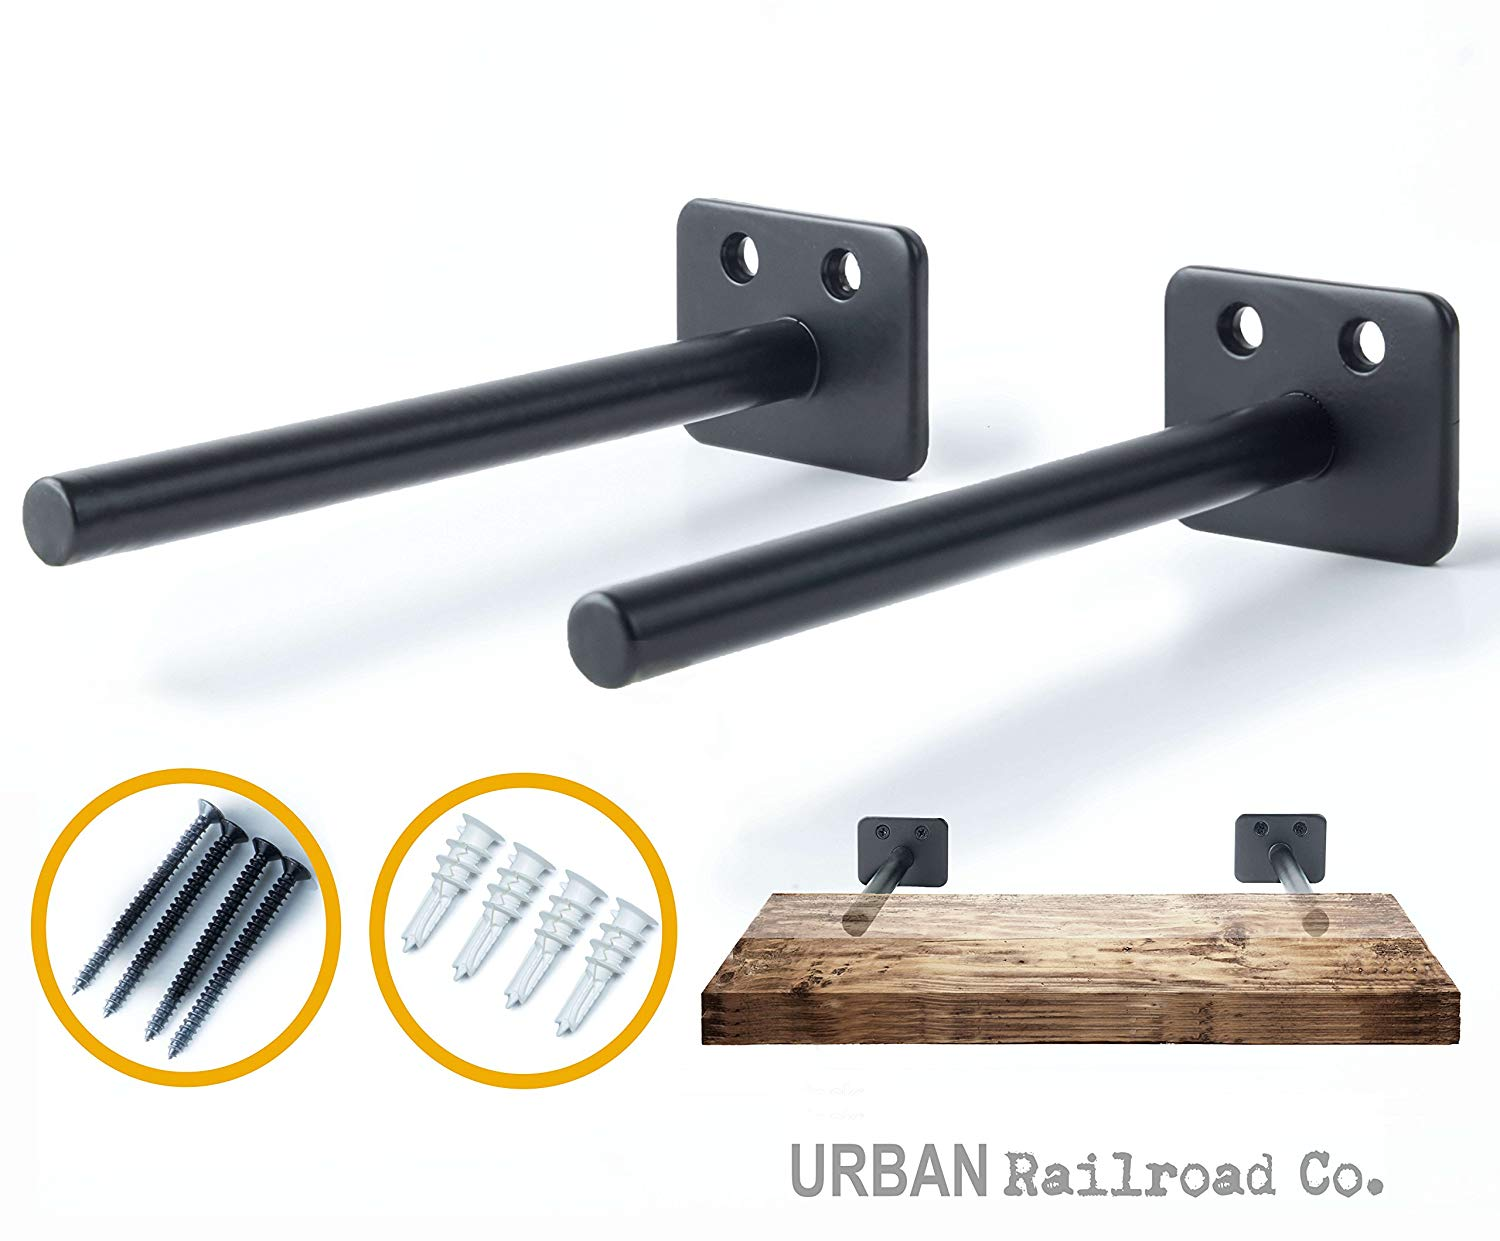 solid steel floating shelf brackets rod with bookshelf diameter powder coated finish rustproof blind supports flush fit hardware only kmart industrial wall piece wood for ikea